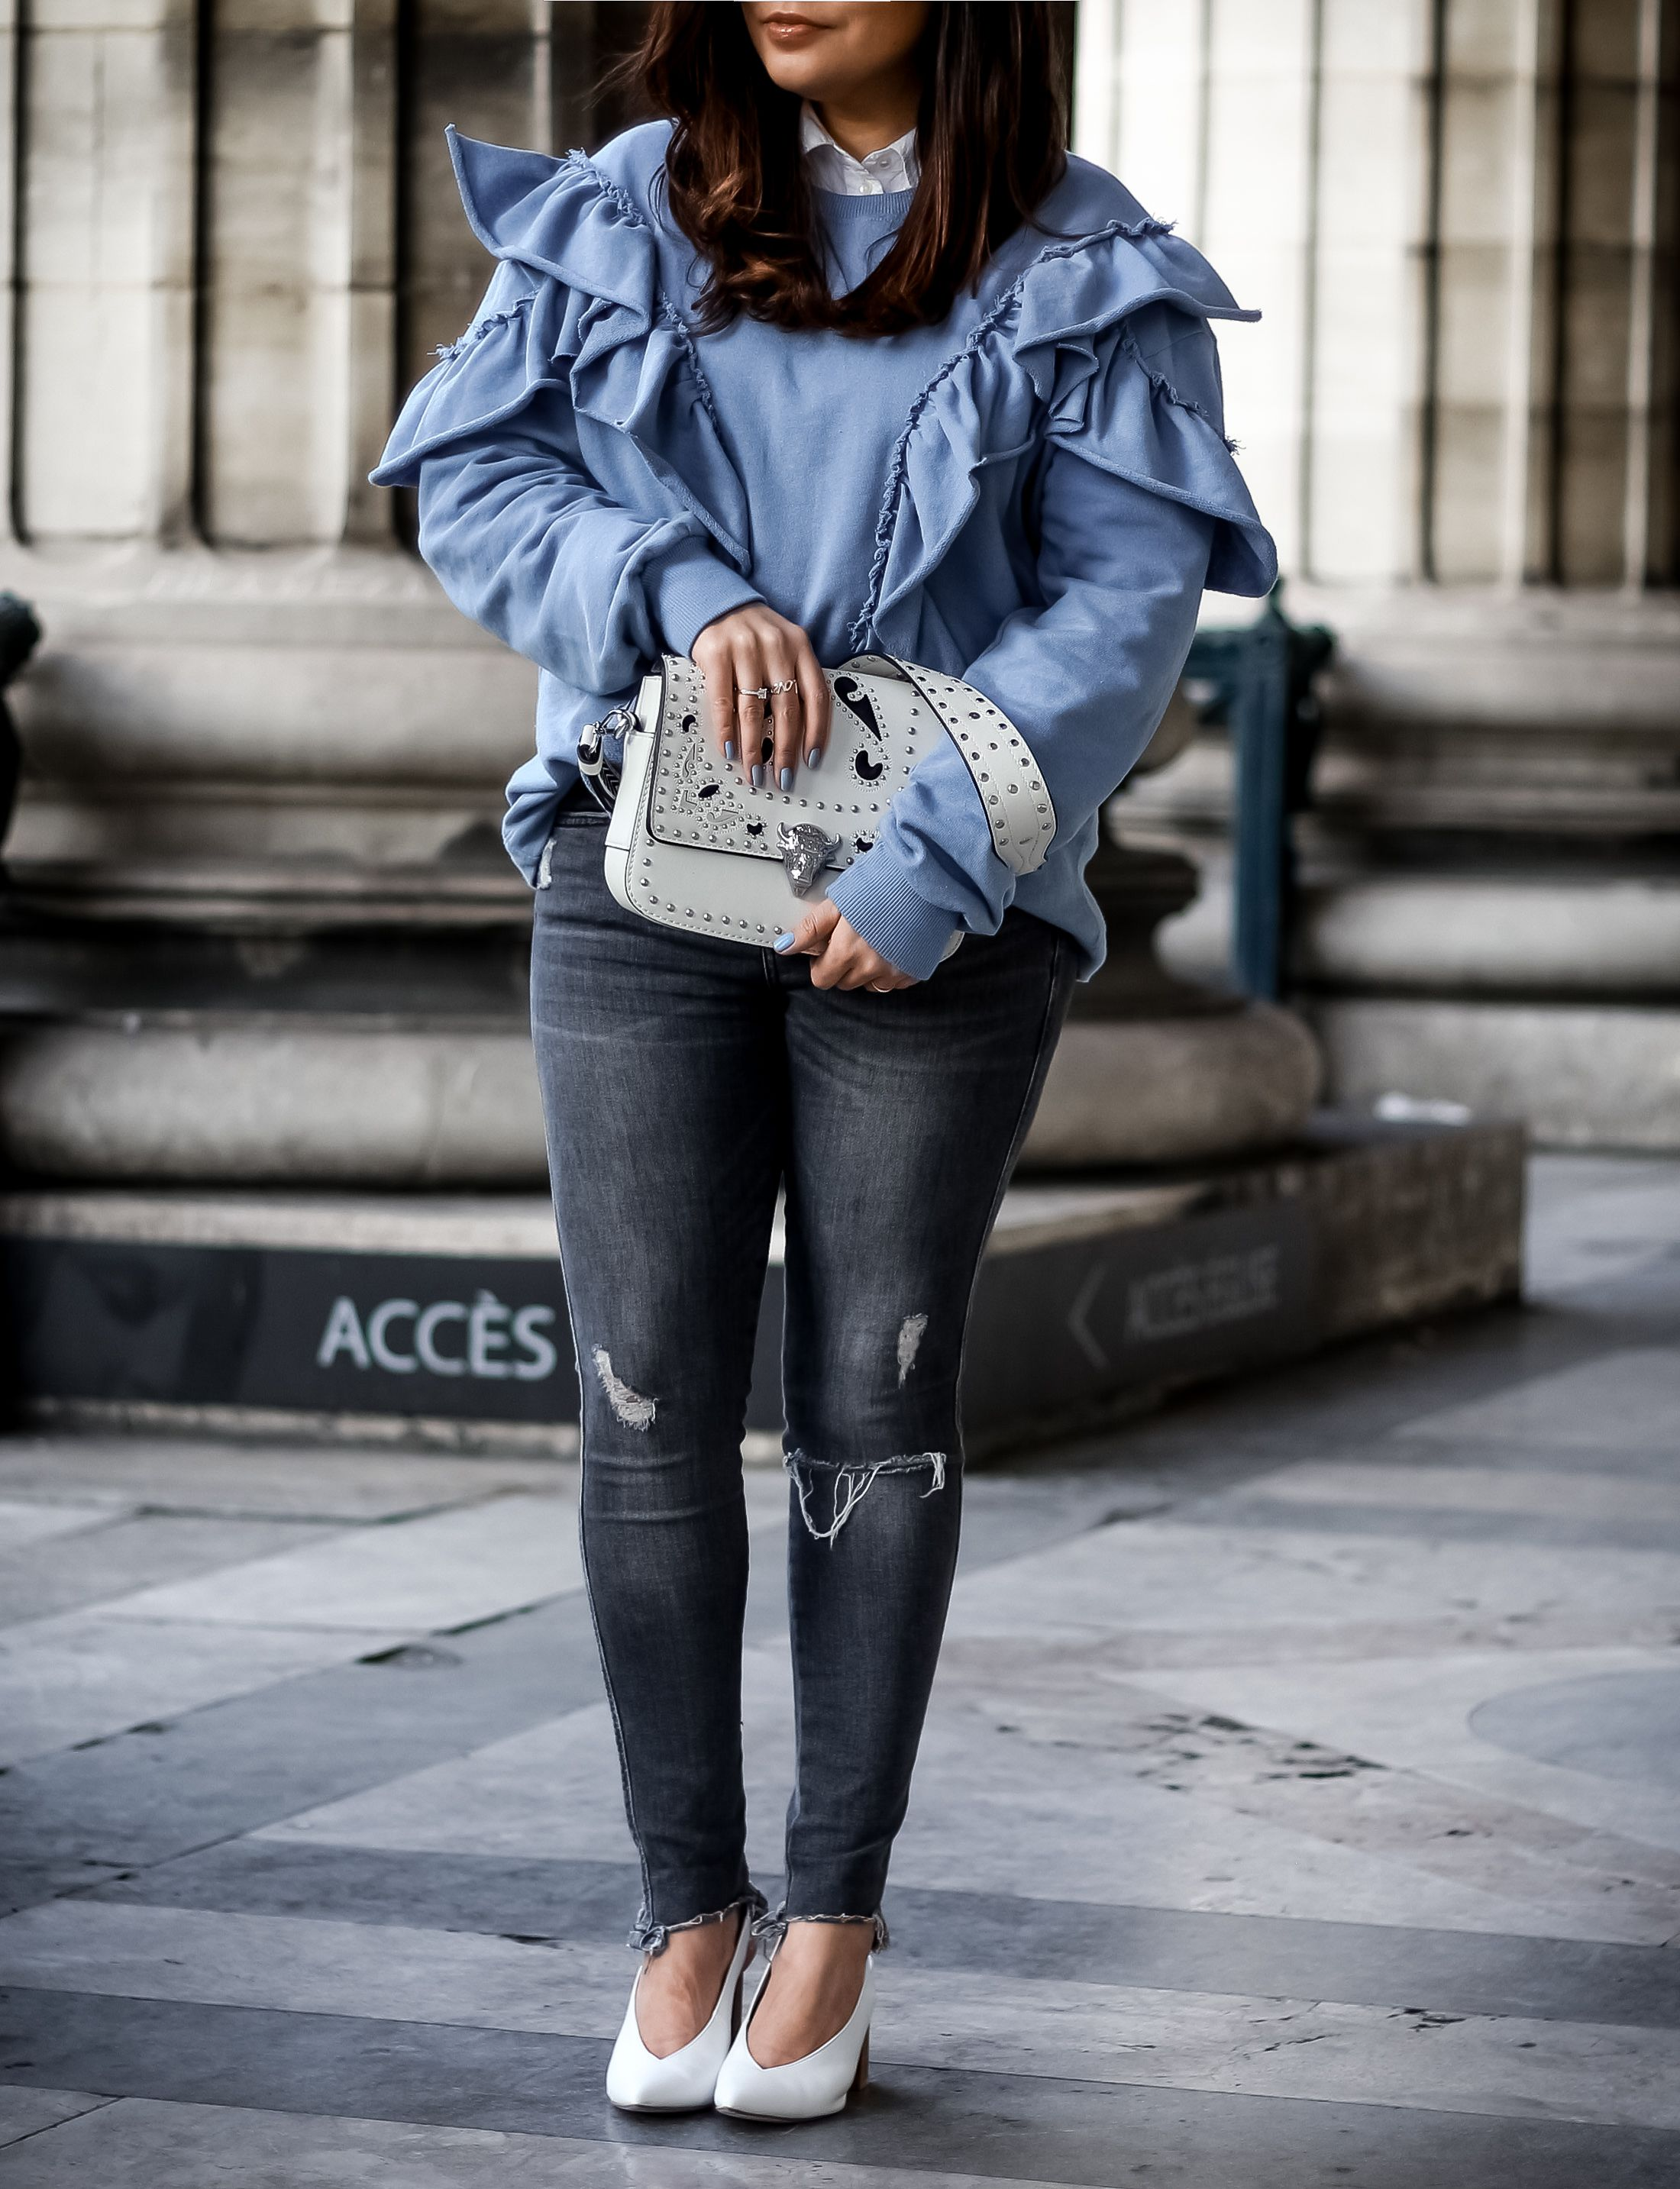 sweat volants, sweat femme, pull and bear, vans, sac zara, jean destroy, zara, la madeleine, blog mode, the green ananas, blogueuse, blue